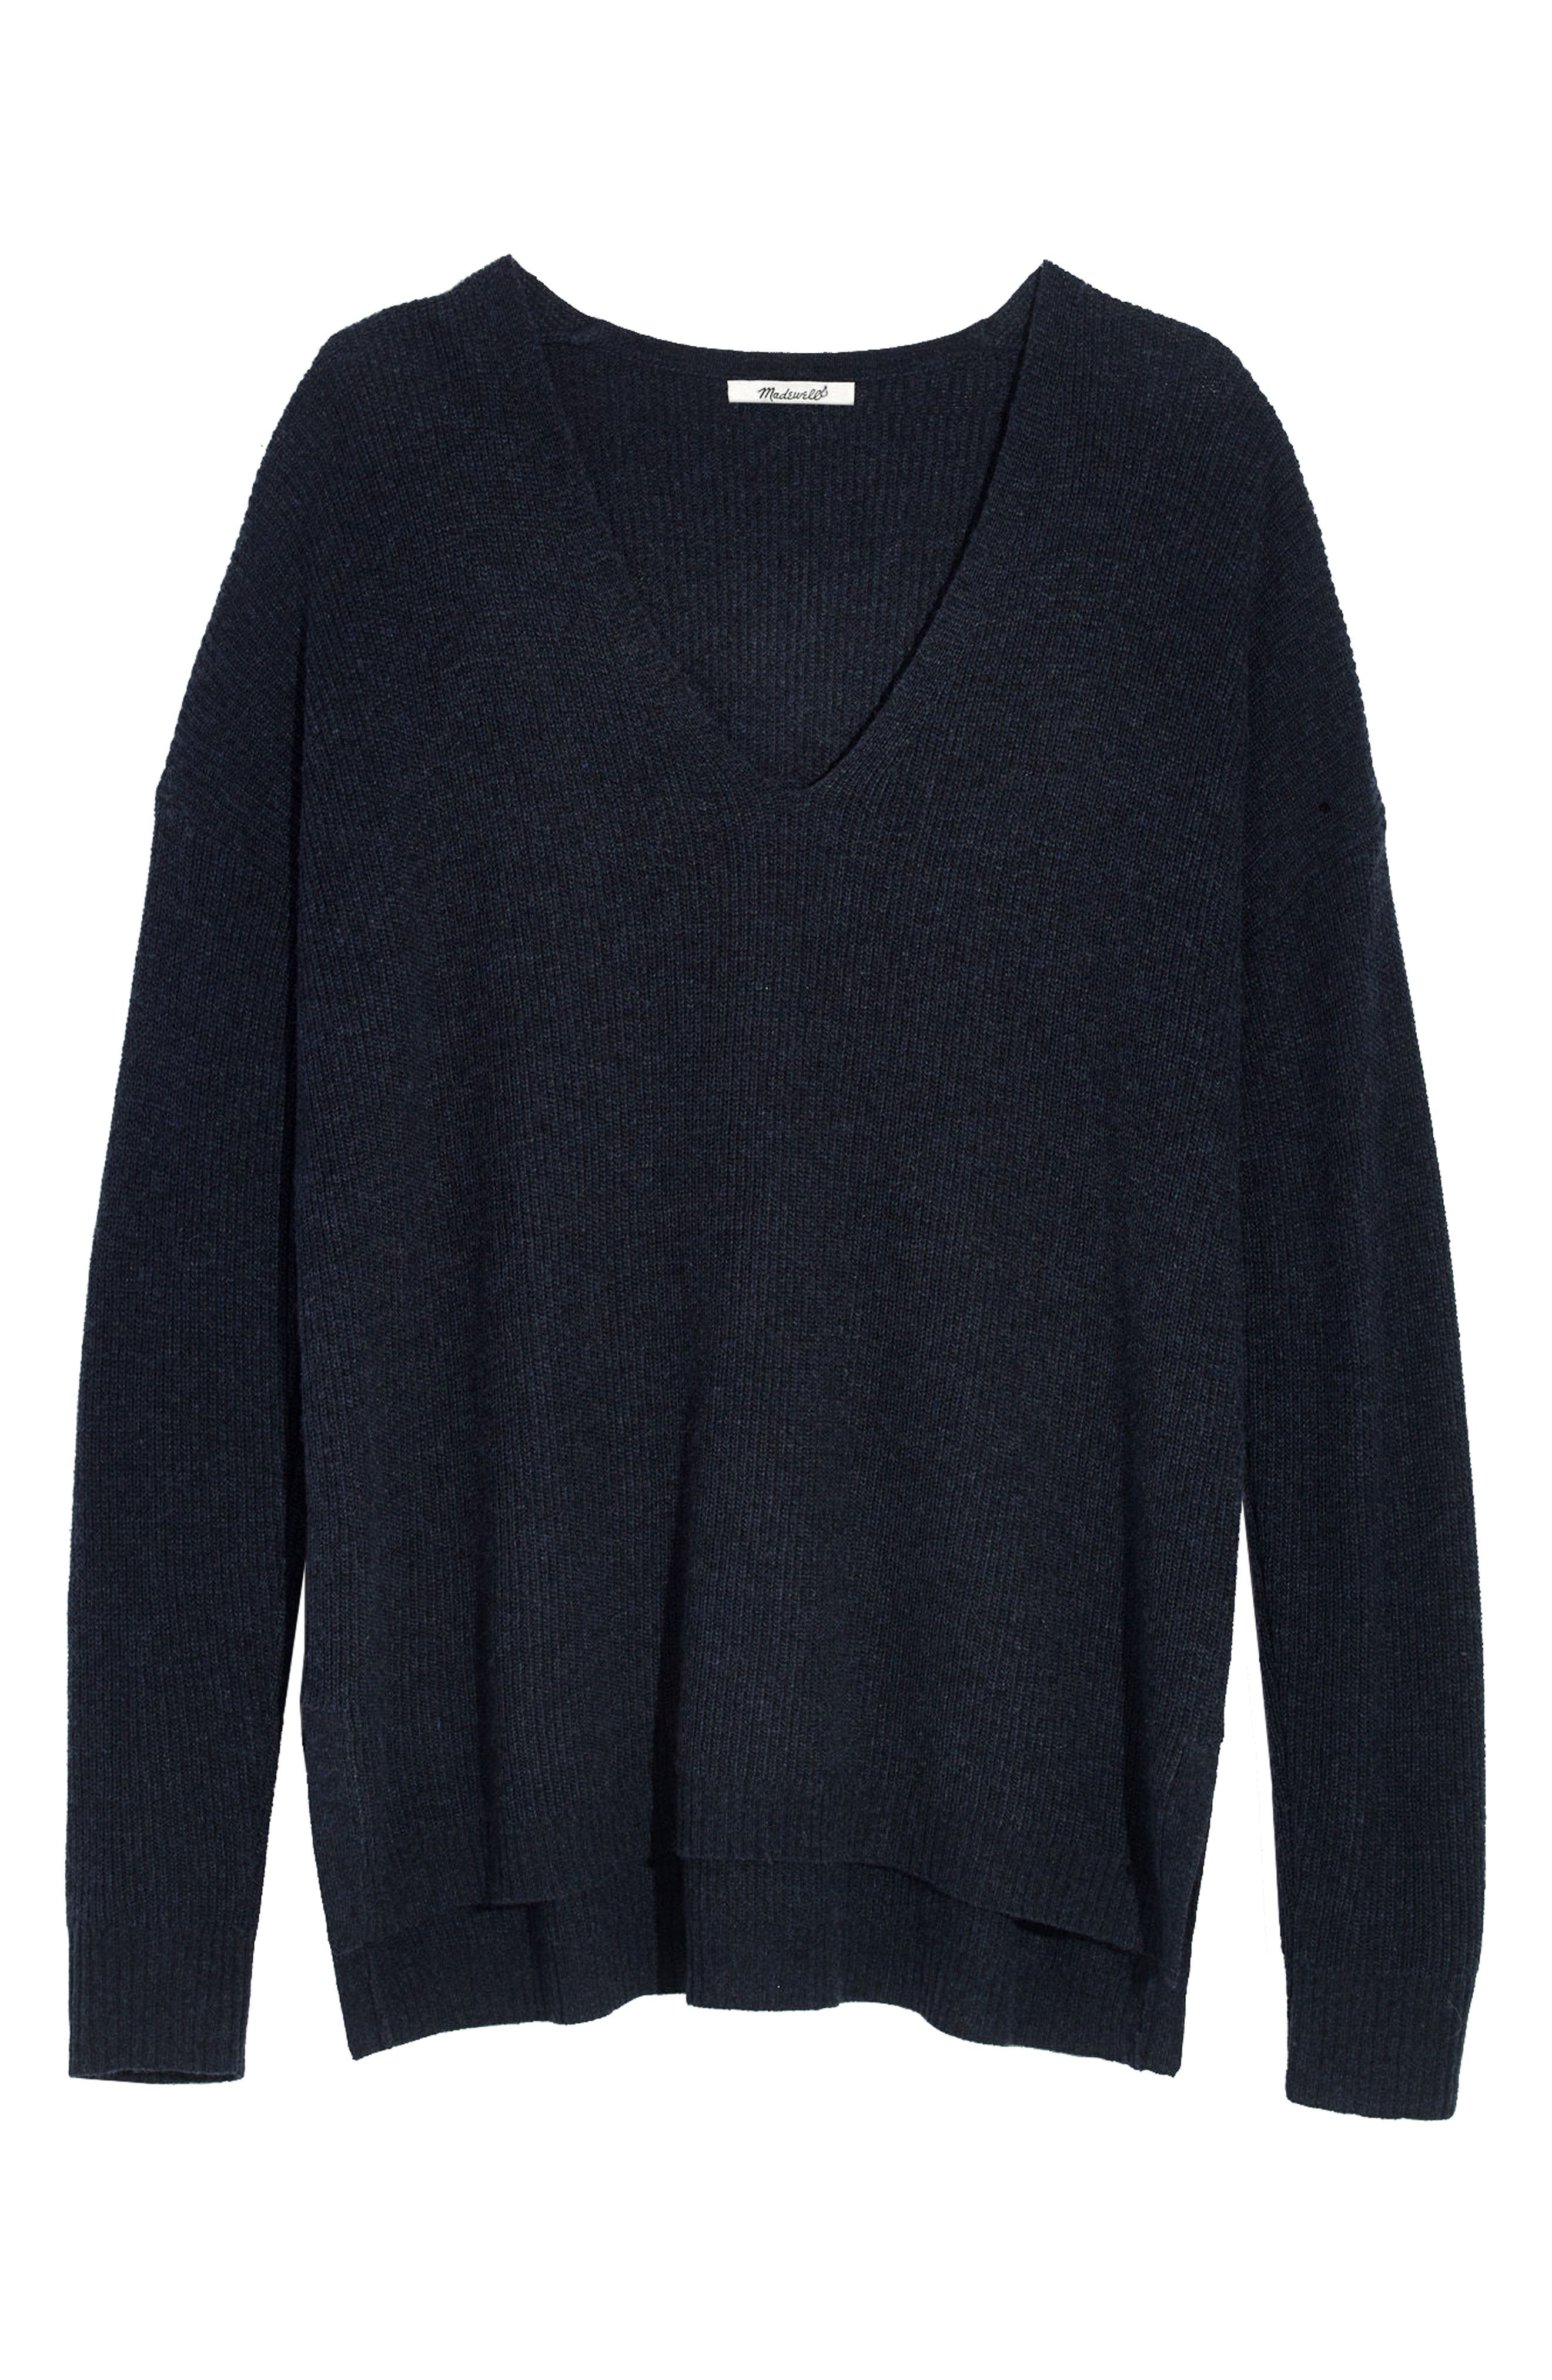 Alternate Image 1 Selected - Madewell Warmlight V-Neck Sweater